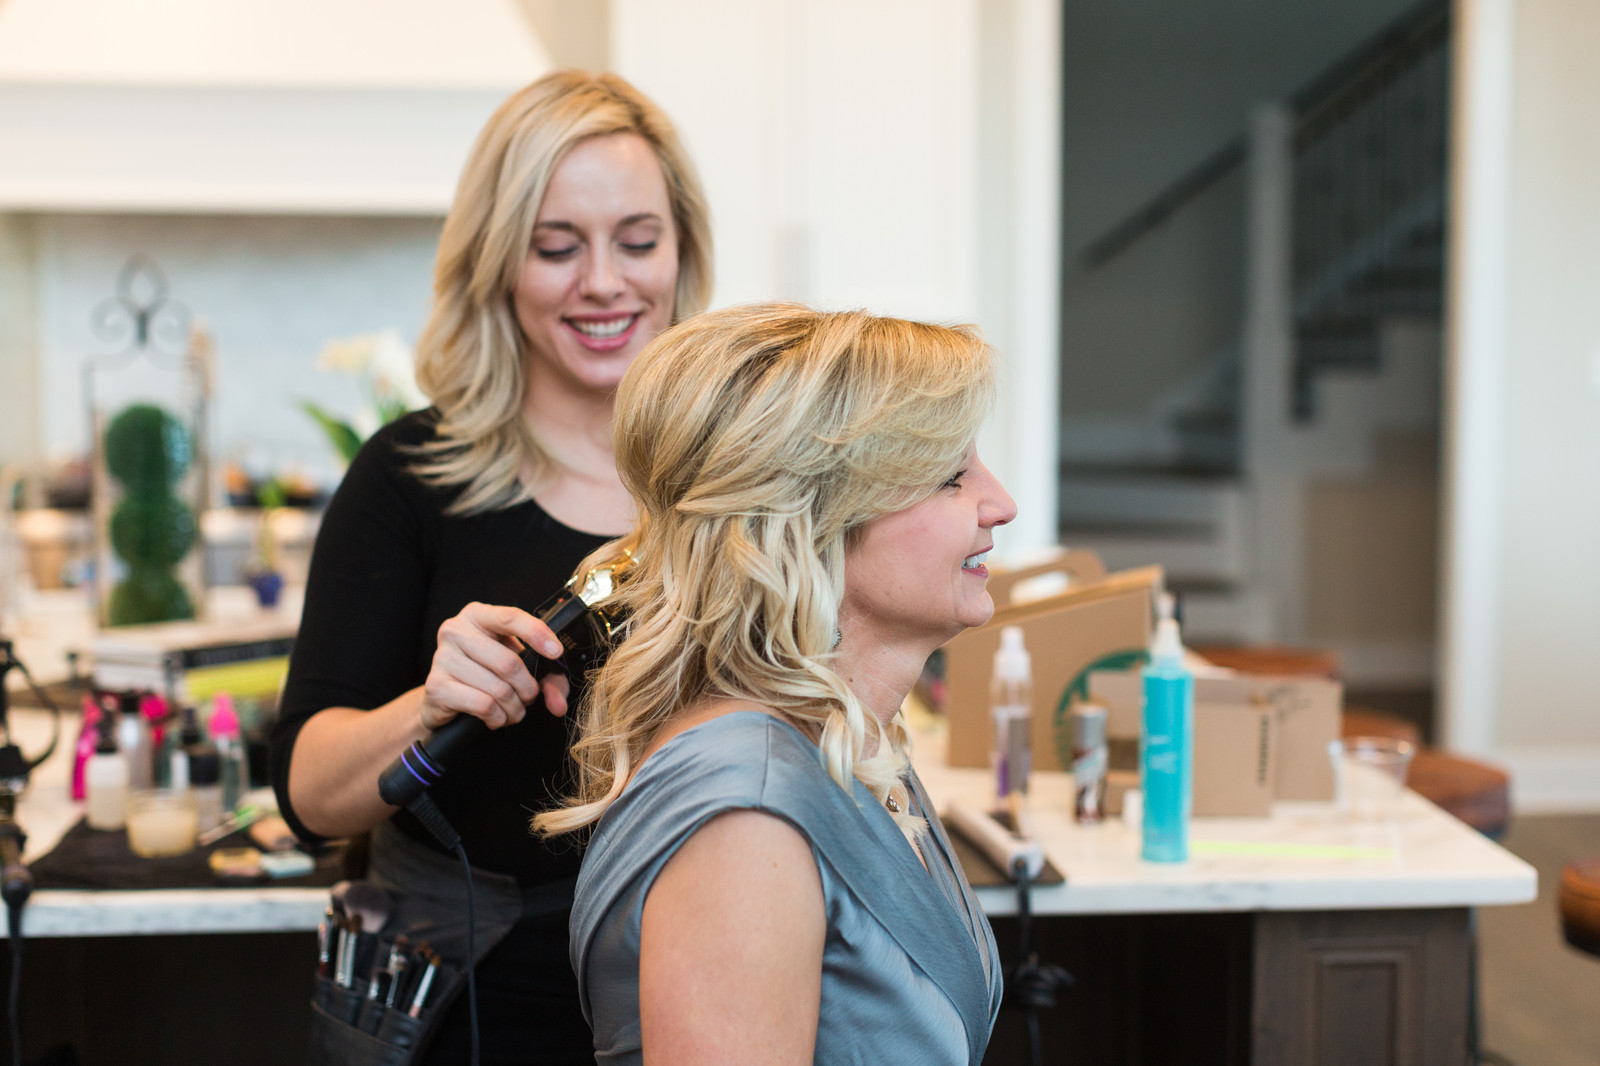 ... to the fun and excitement of a bride's big day by making sure she and her bridal party are glowing and gorgeous with flawless makeup and beautiful hair.